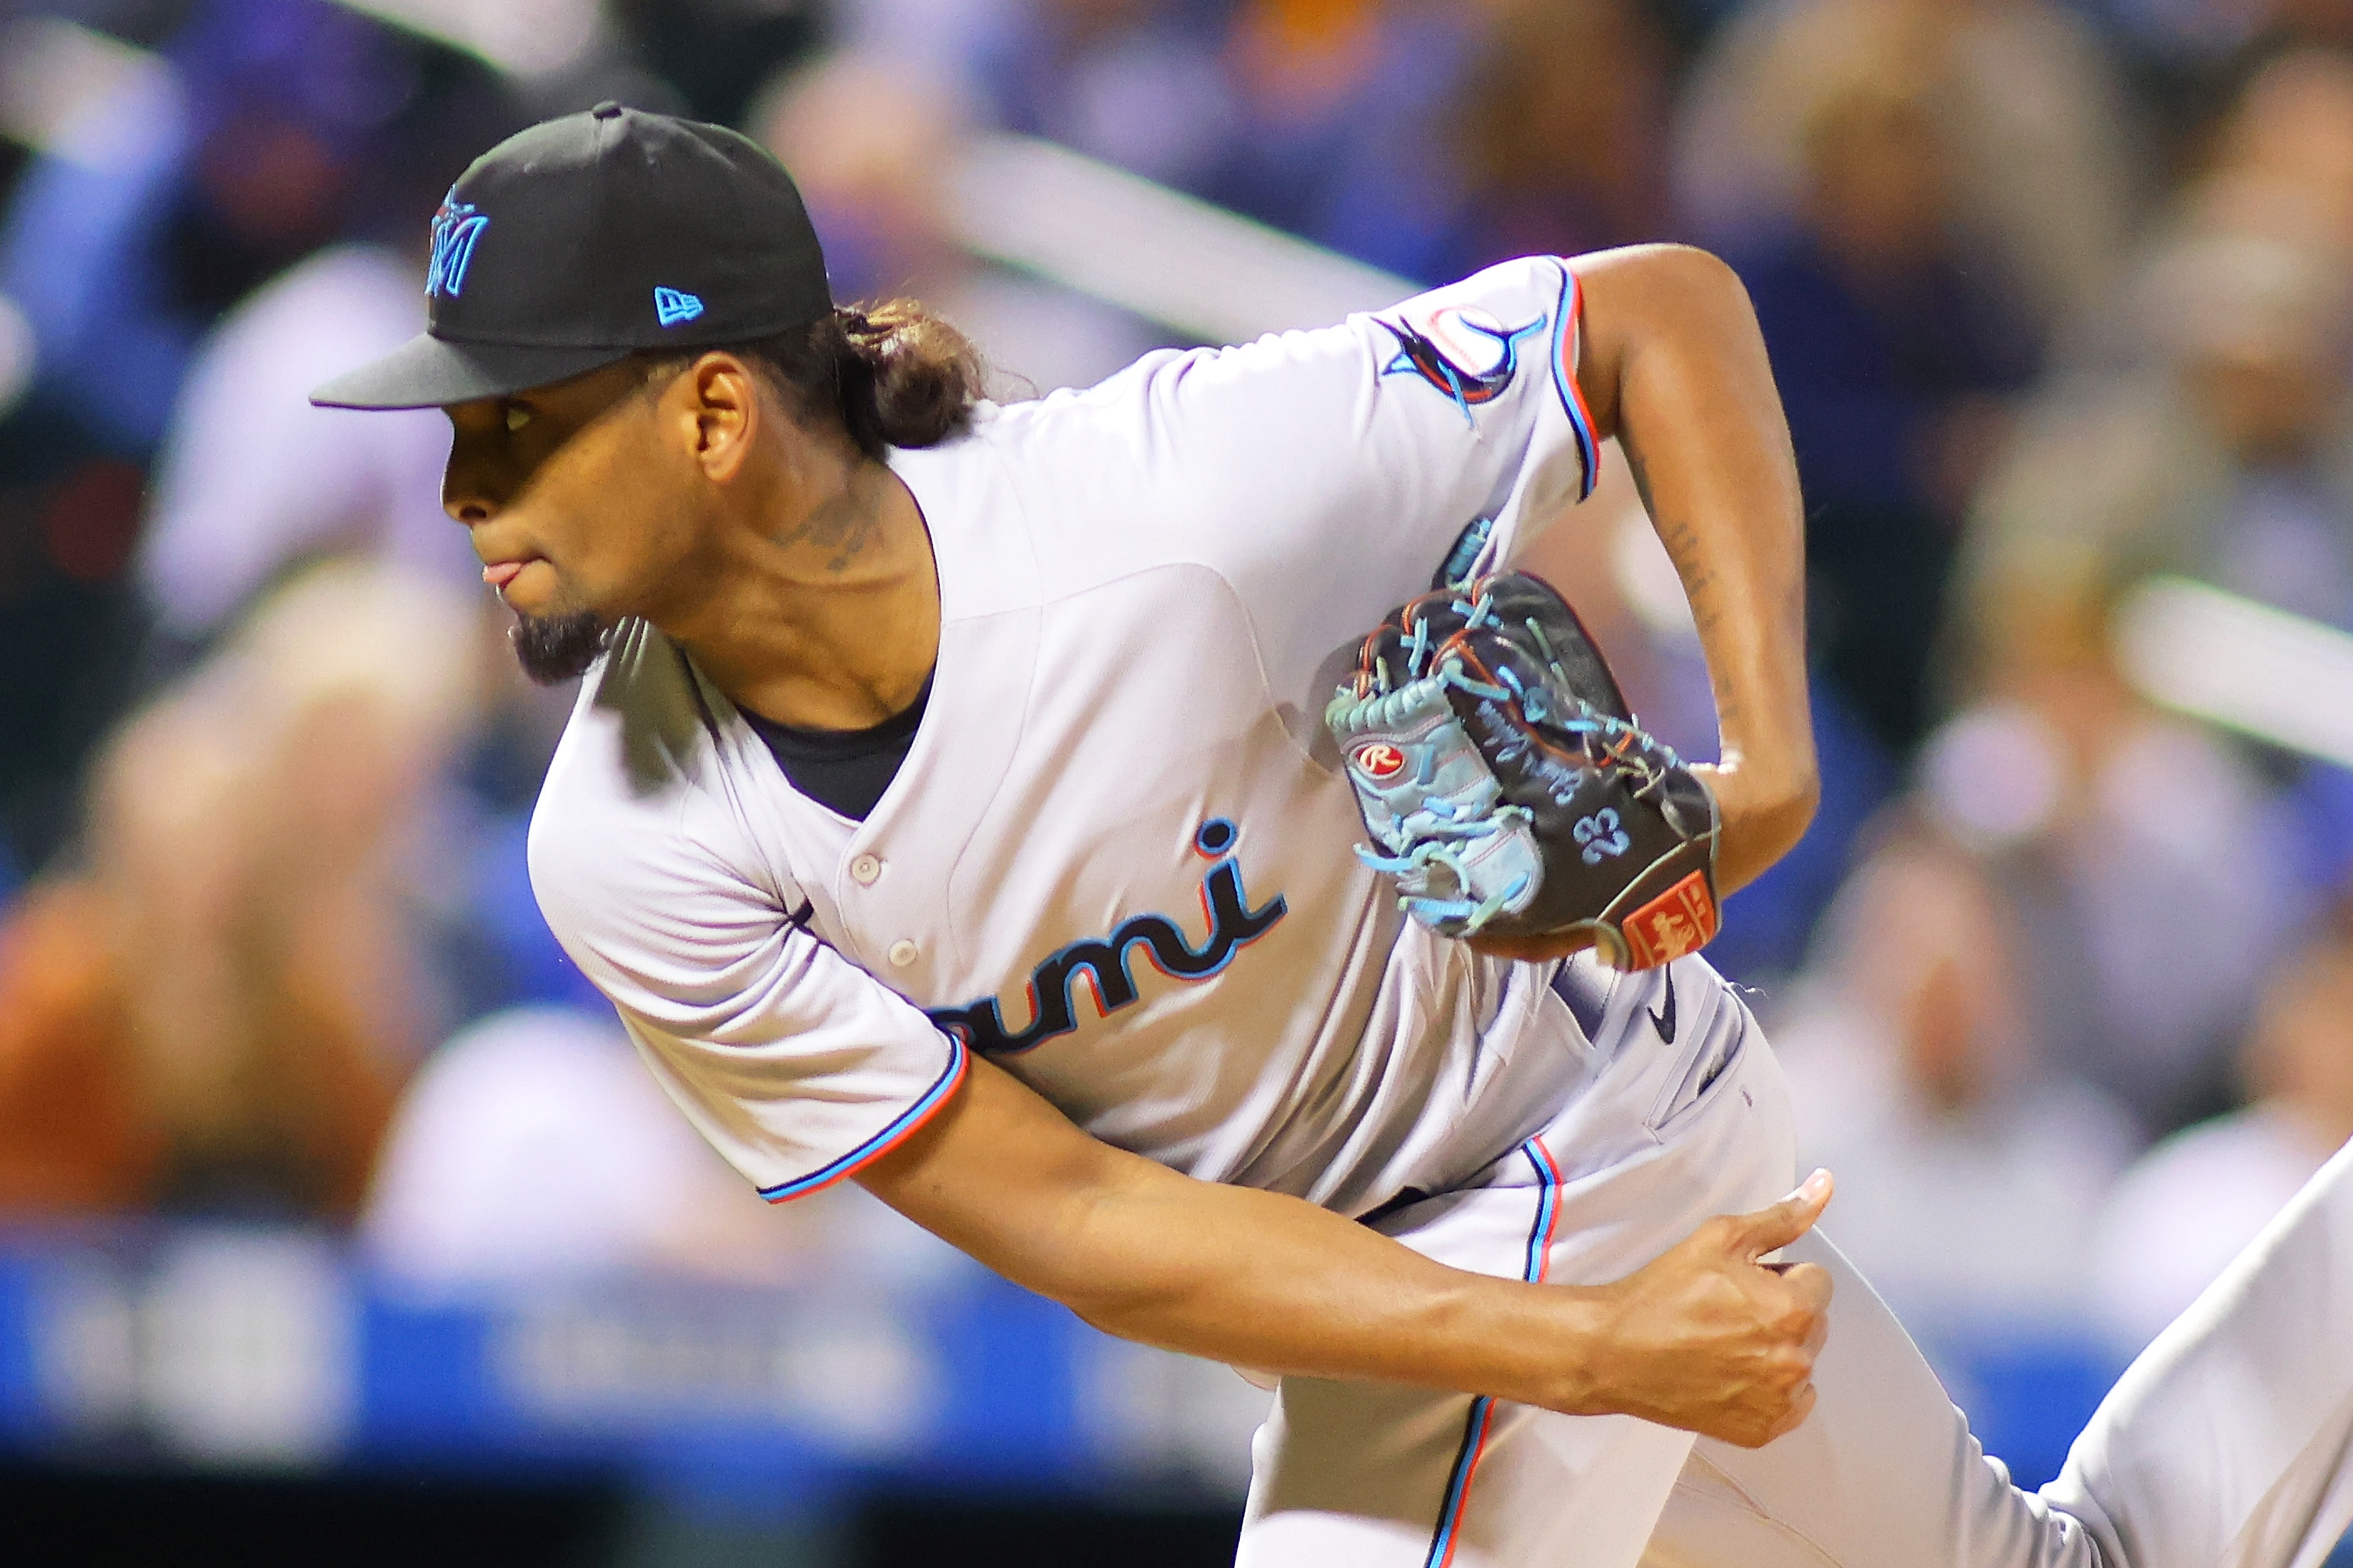 Edward Cabrera #79 of the Miami Marlins pitches in the first inning against the New York Mets at Citi Field